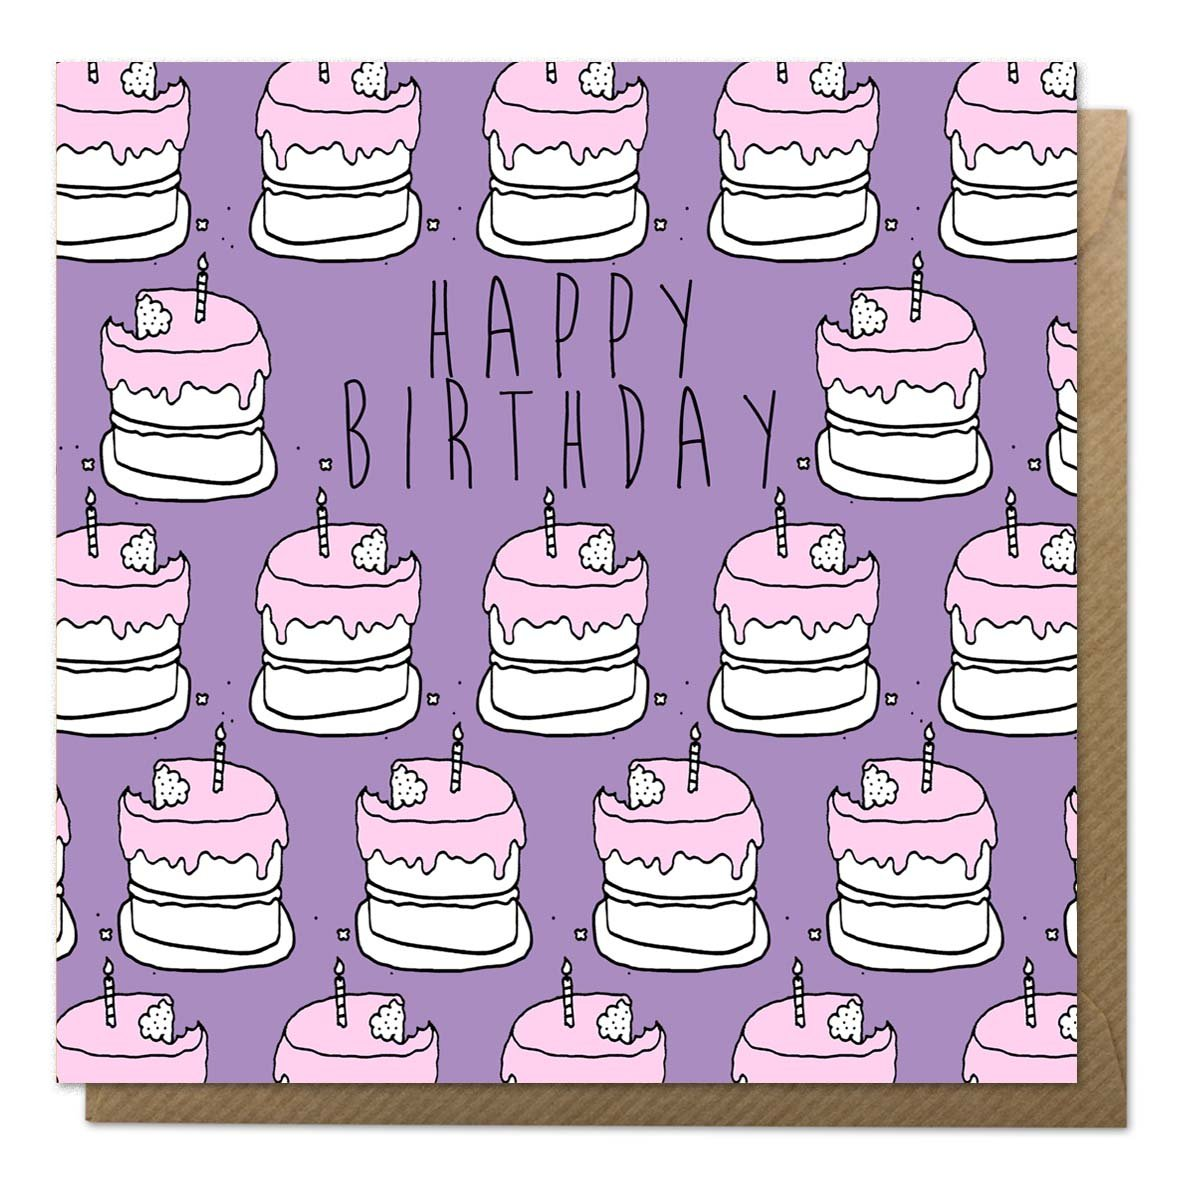 Purple birthday cake card with brown envelope